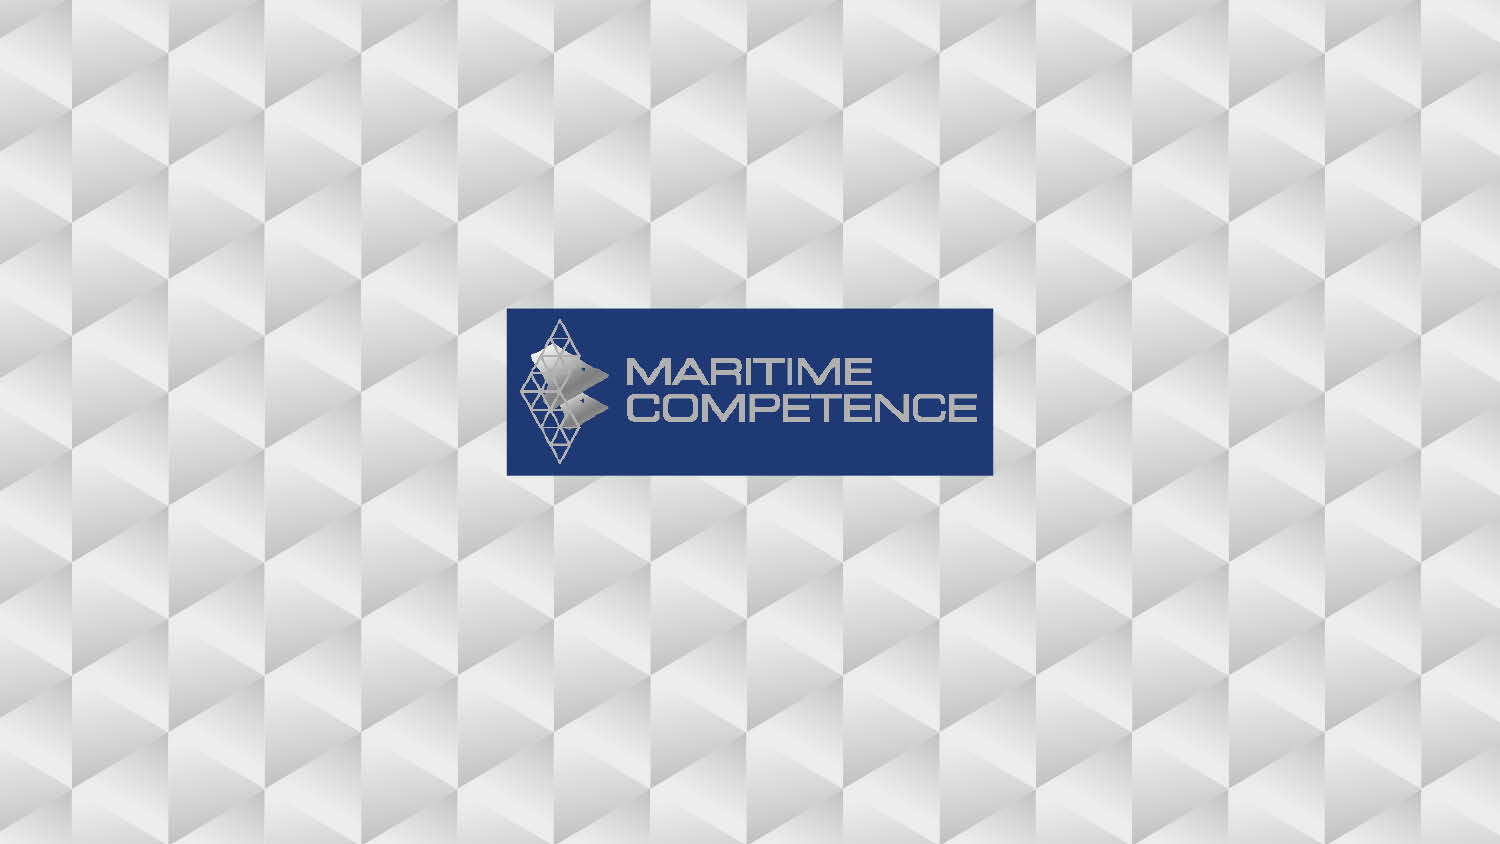 Maritime Competence